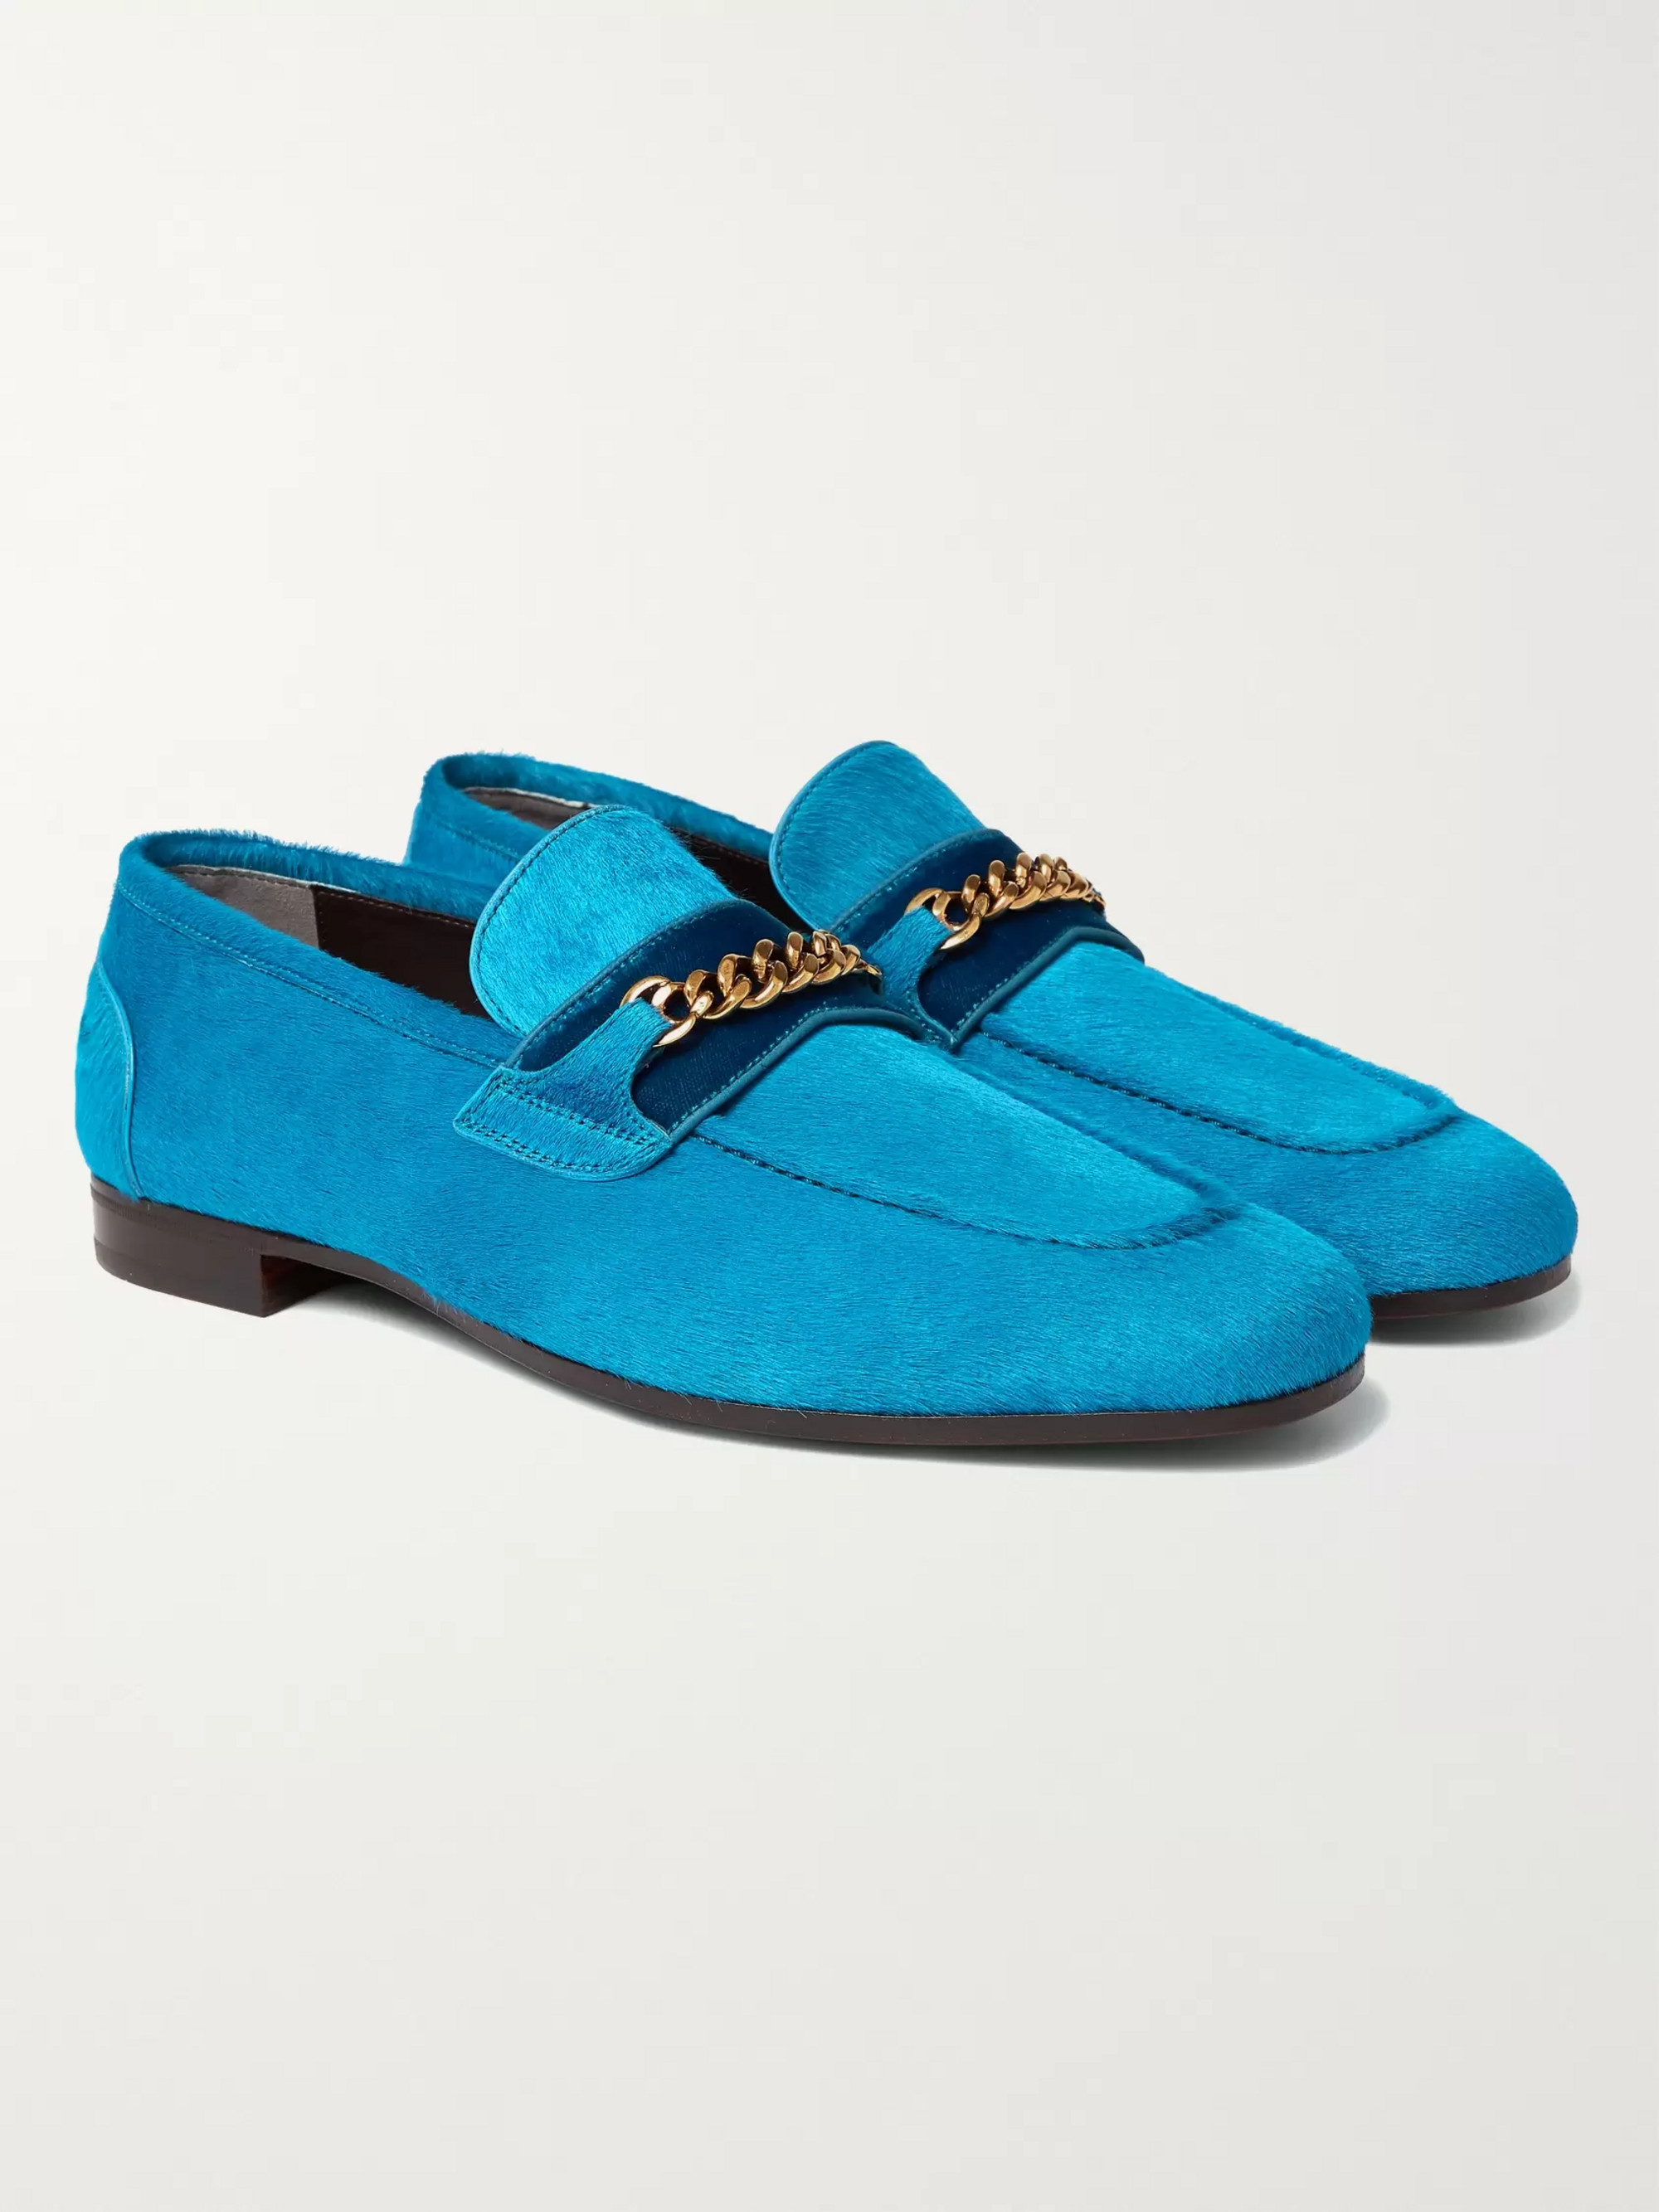 39dca2287227b Blue Wilton Chain-Embellished Calf Hair Loafers | TOM FORD | MR PORTER